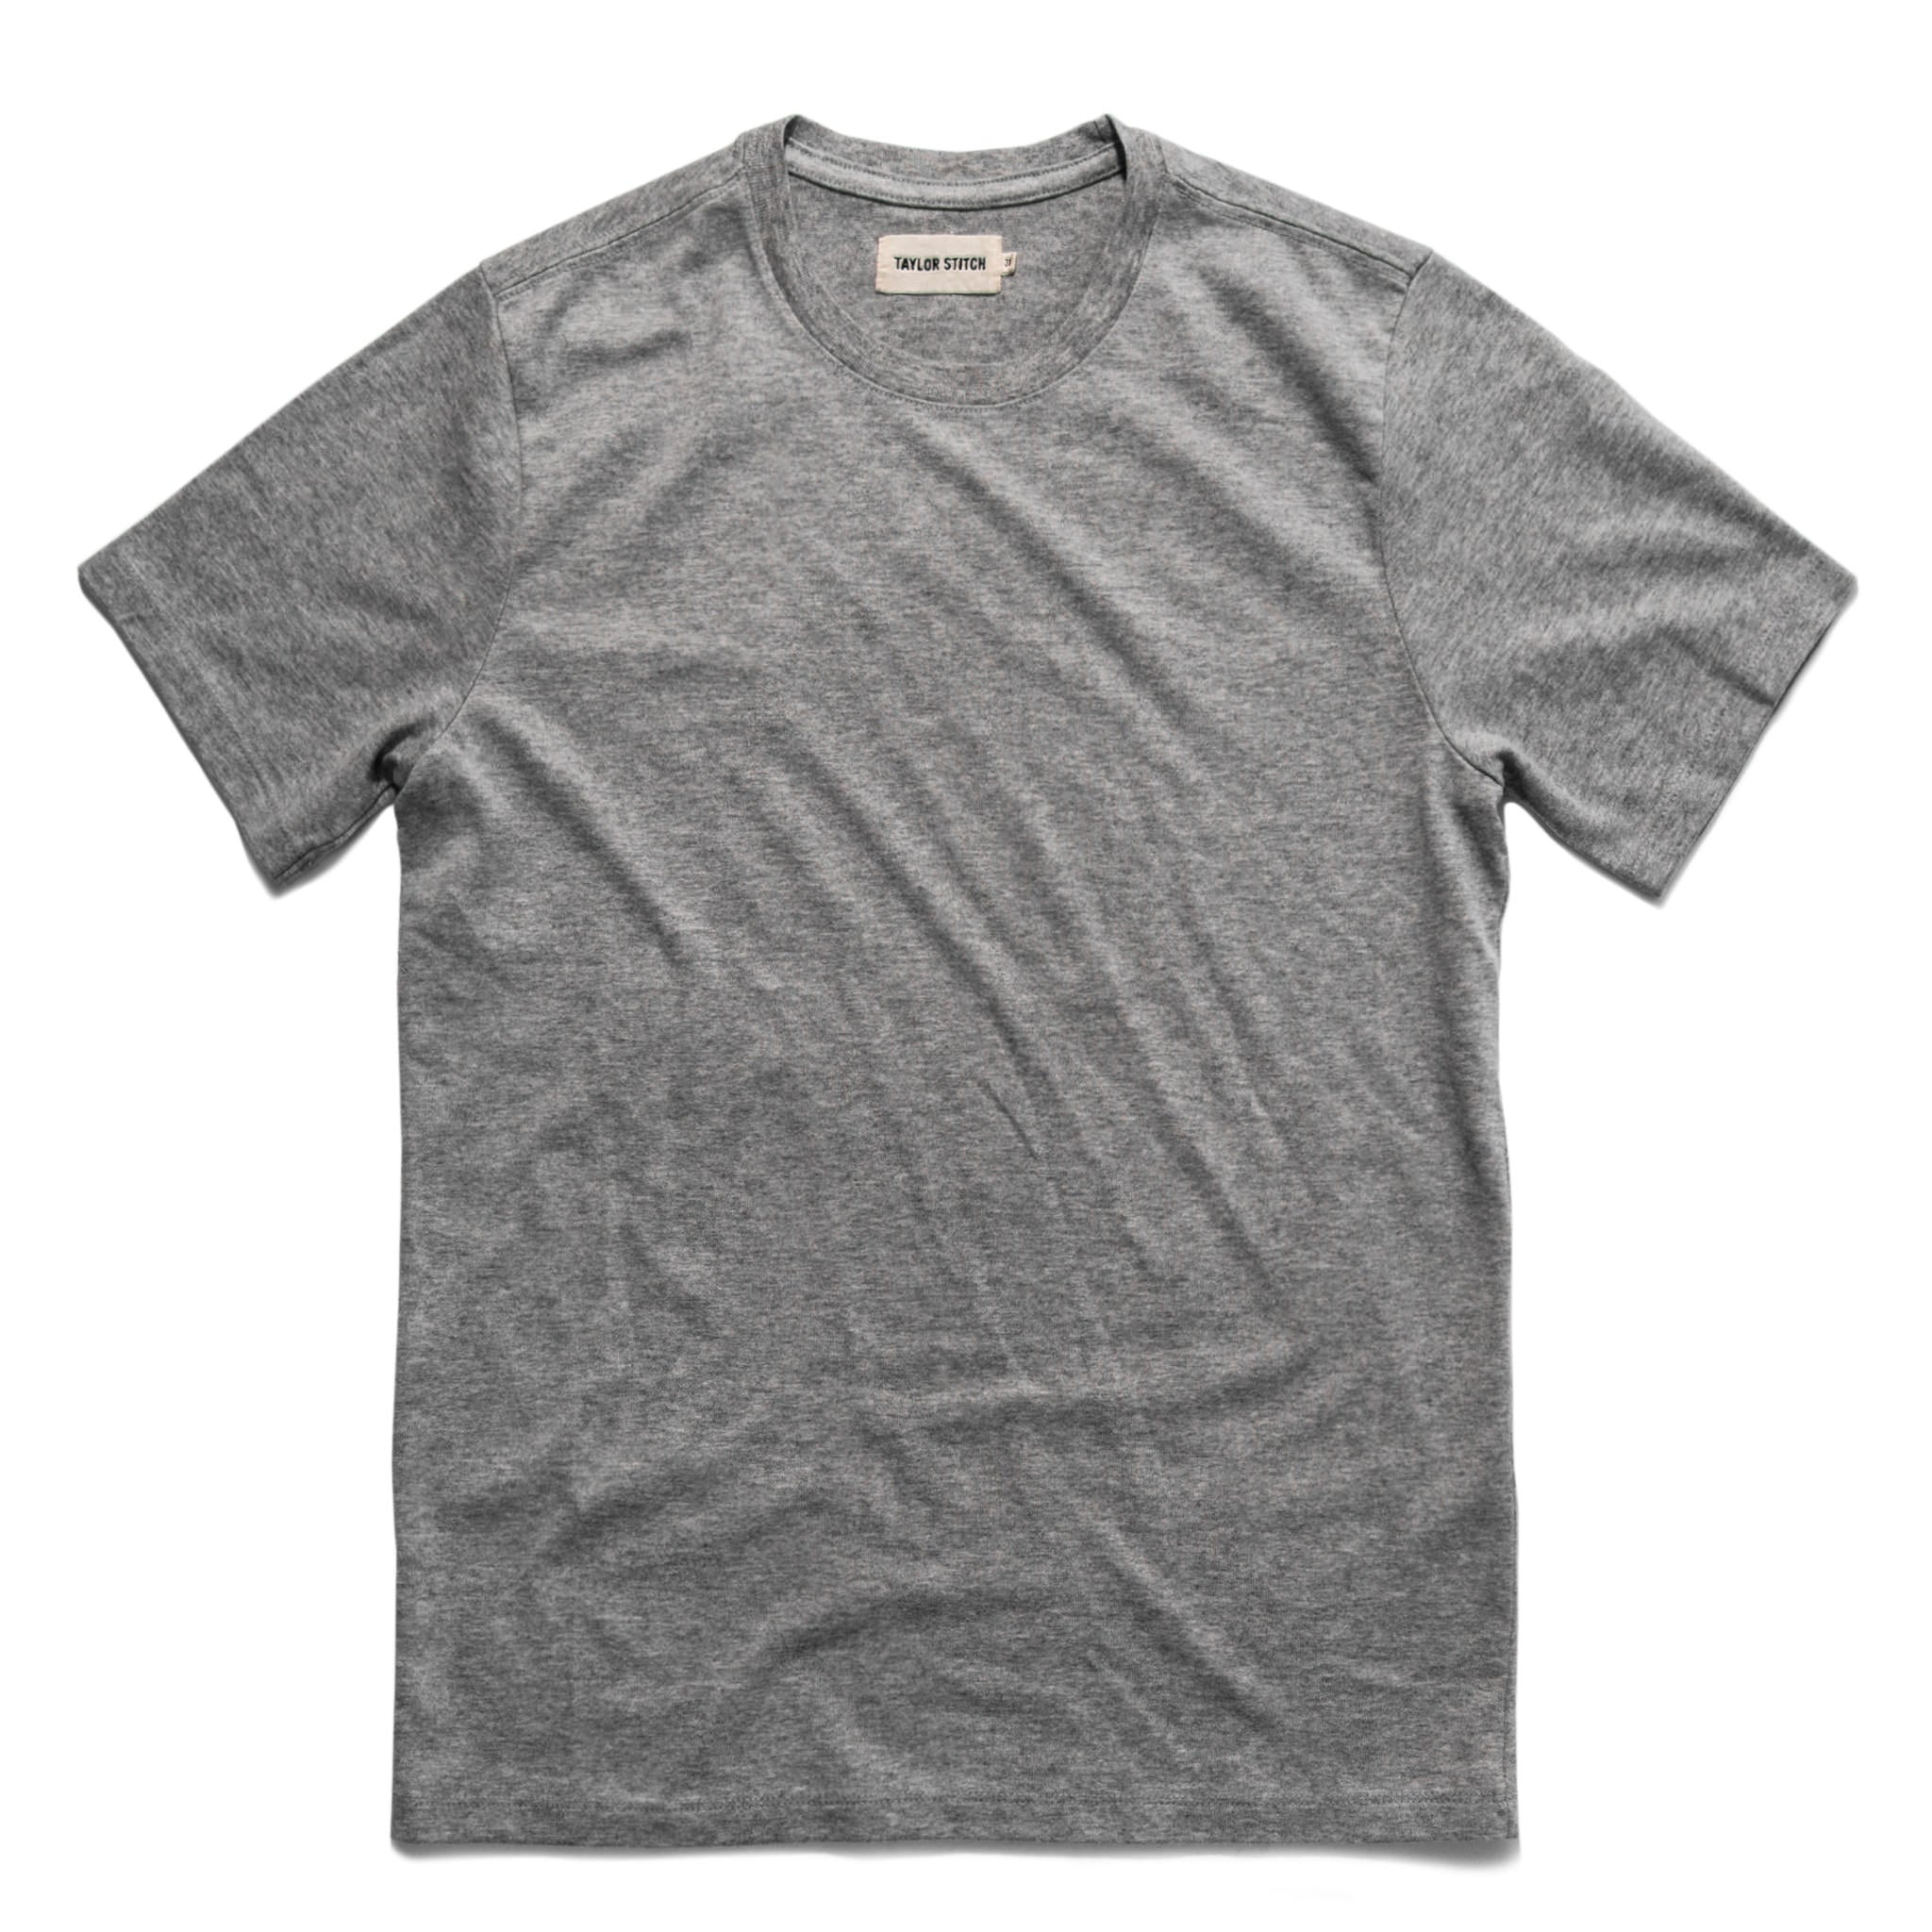 Image of THE TRIBLEND TEE <br>IN GREY